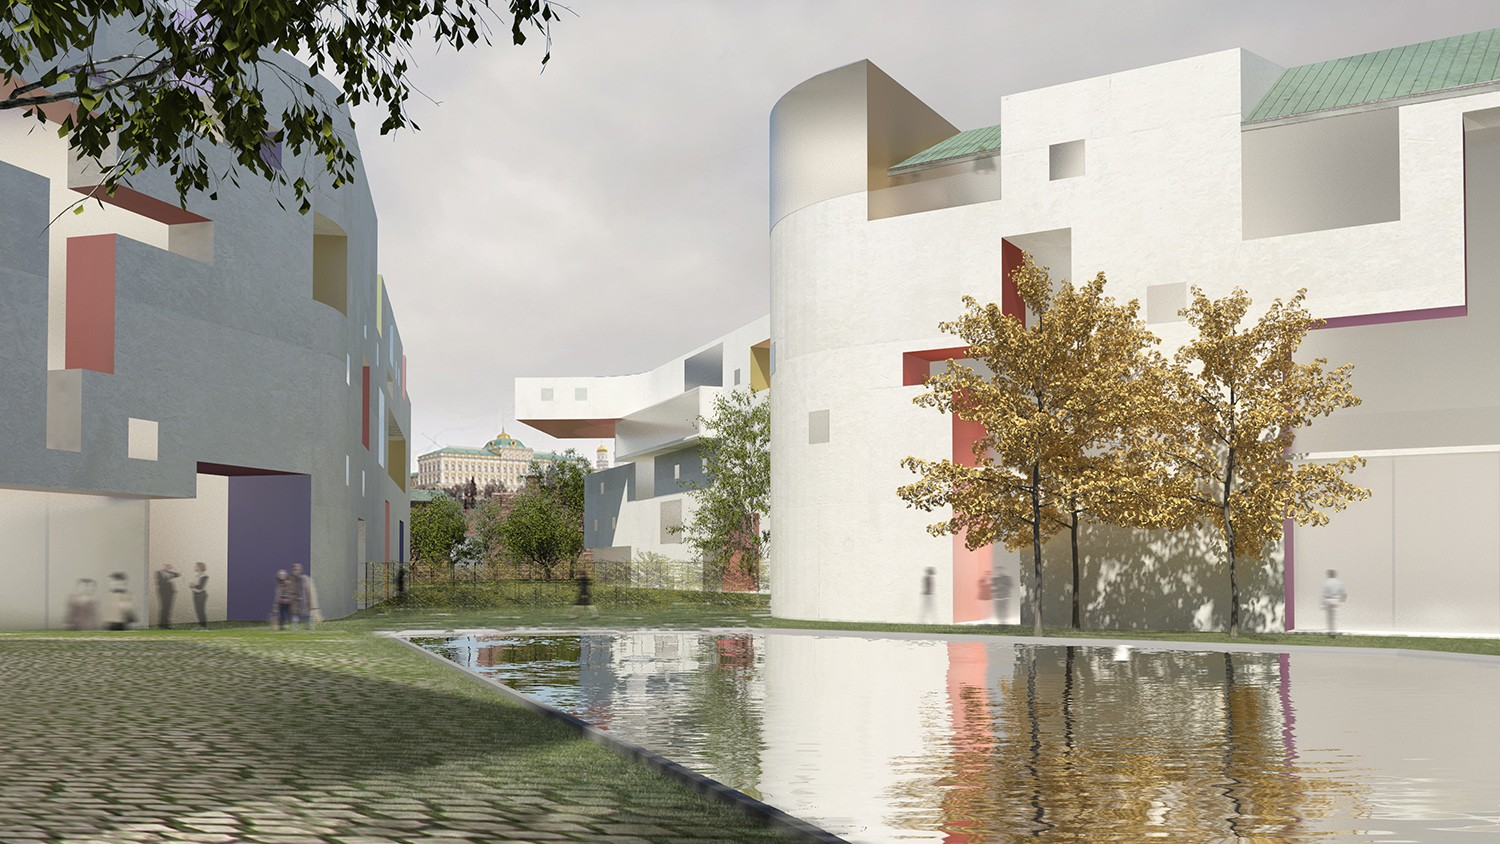 https://stevenholl.sfo2.digitaloceanspaces.com/uploads/projects/project-images/StevenHollArchitects_MGI_SHA-Moscow-Privategarden_WH.jpg